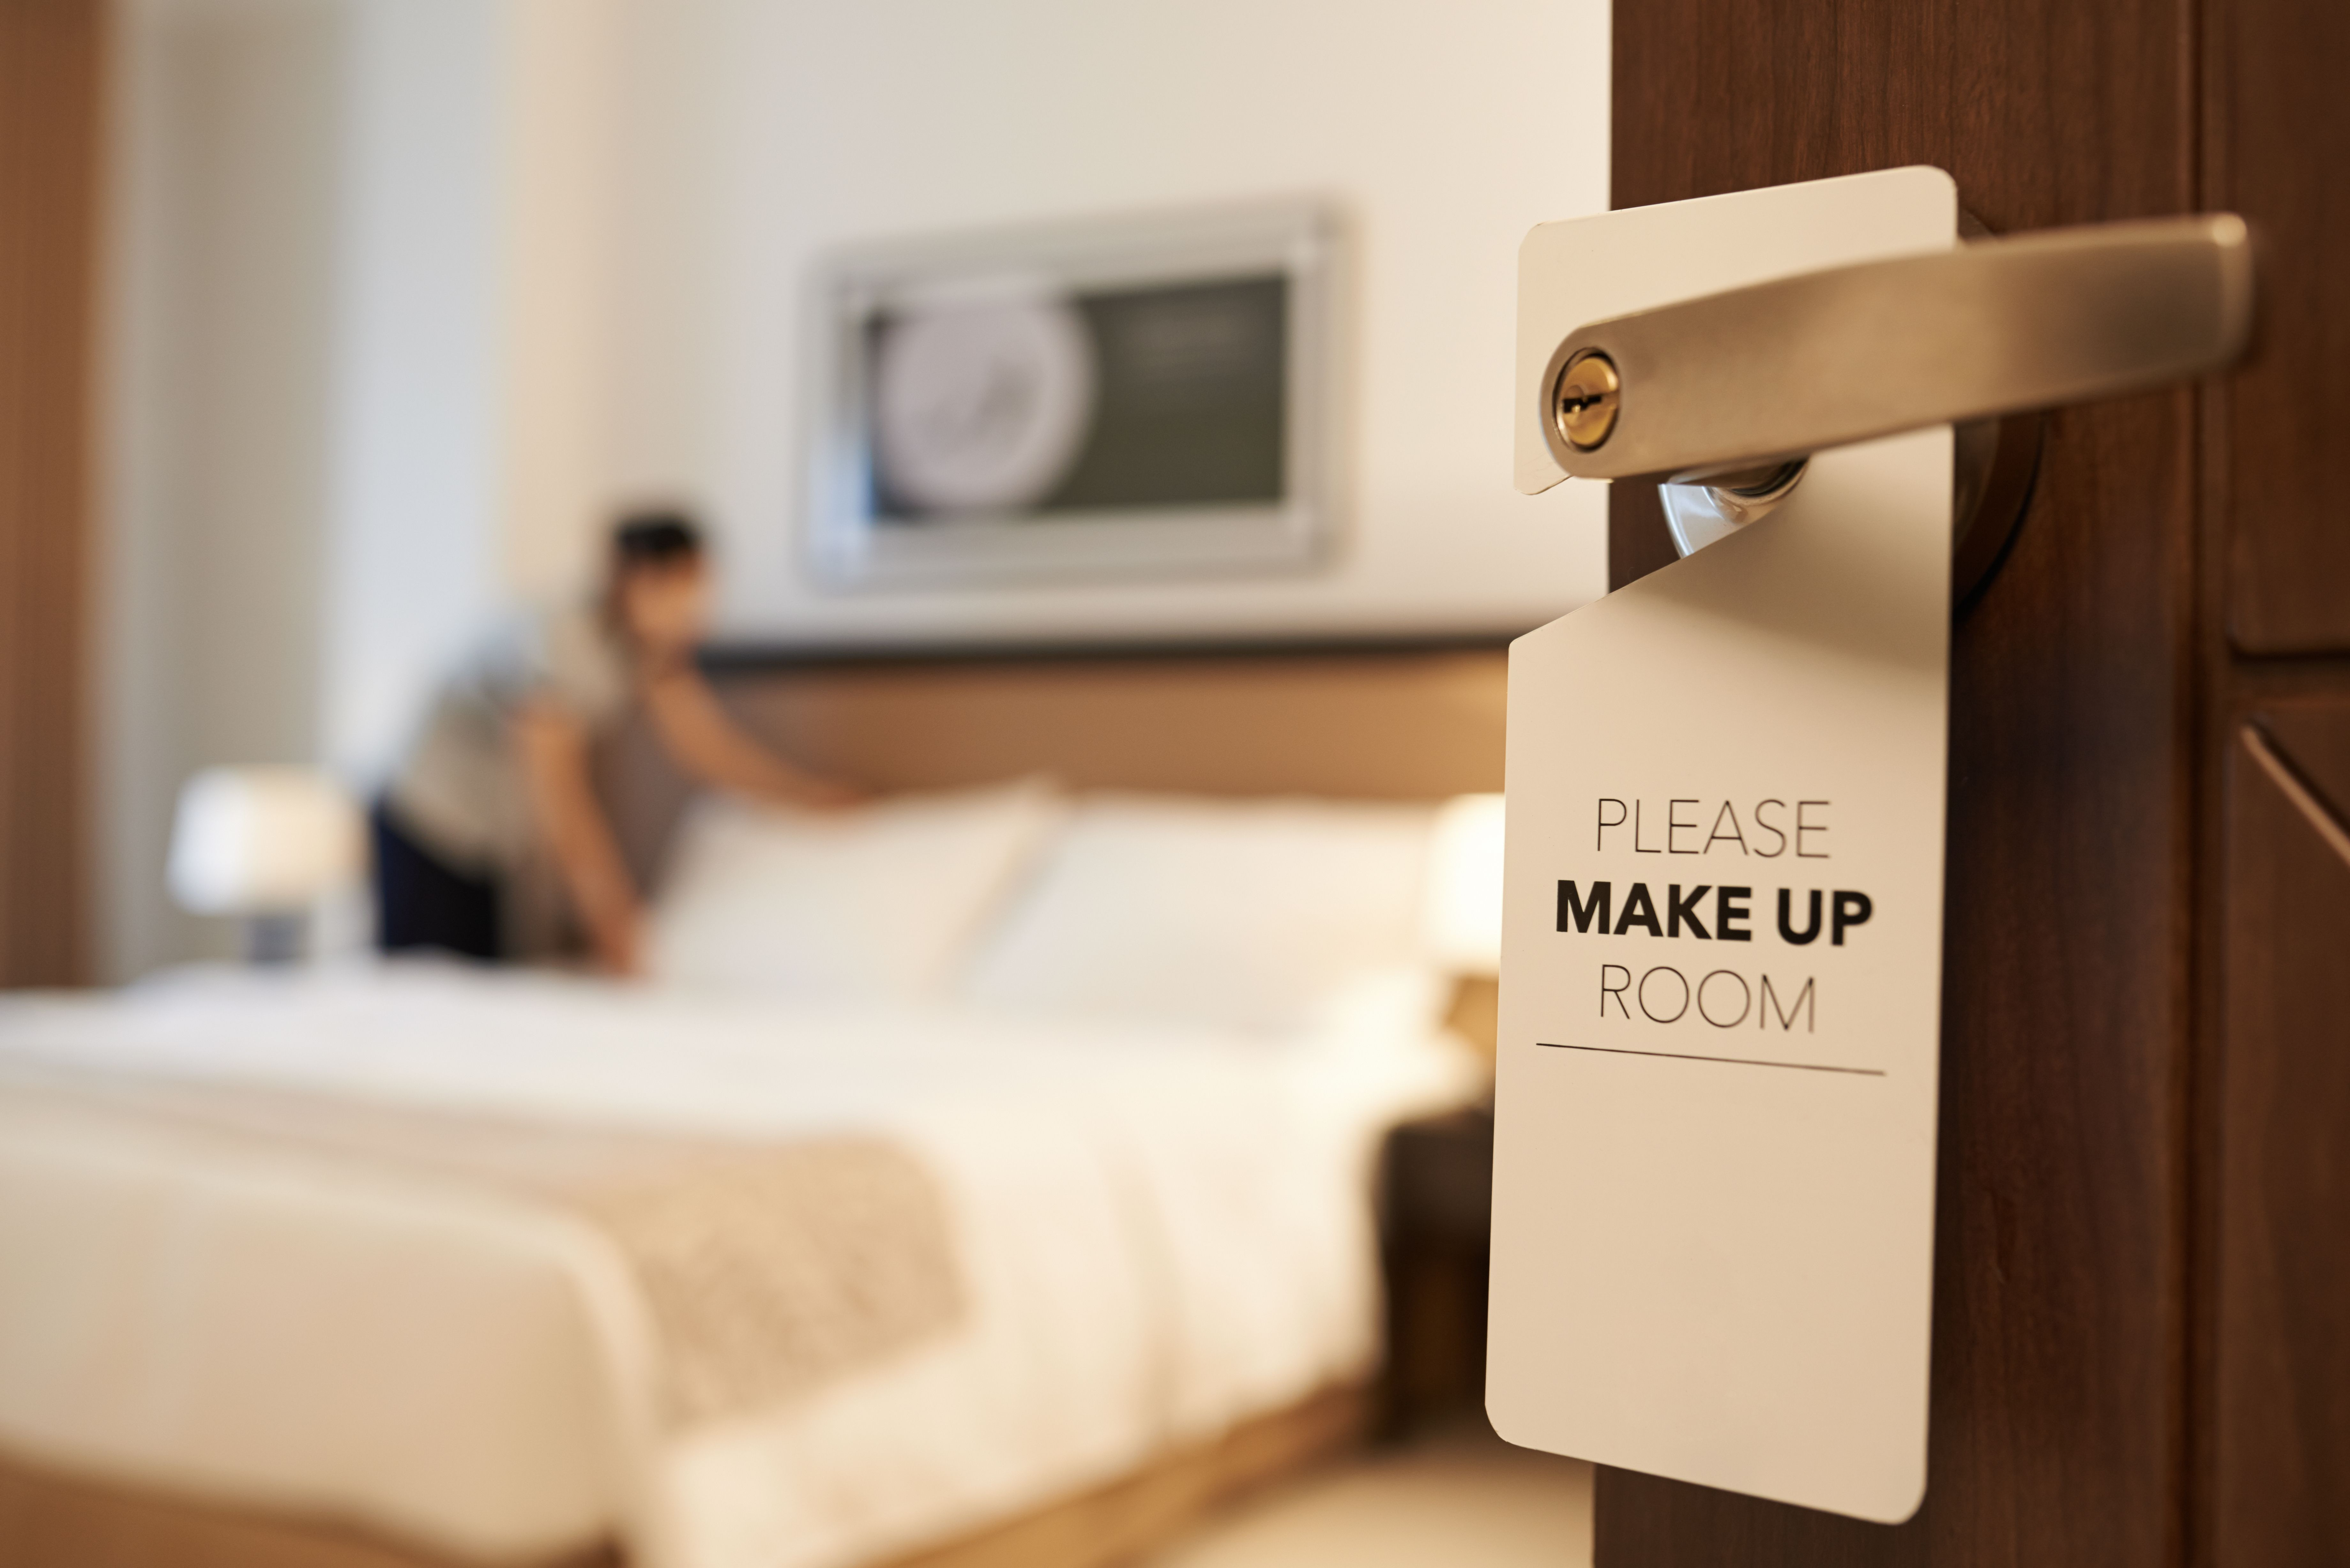 How Much to Tip Hotel Housekeeping  Hotel housekeeping